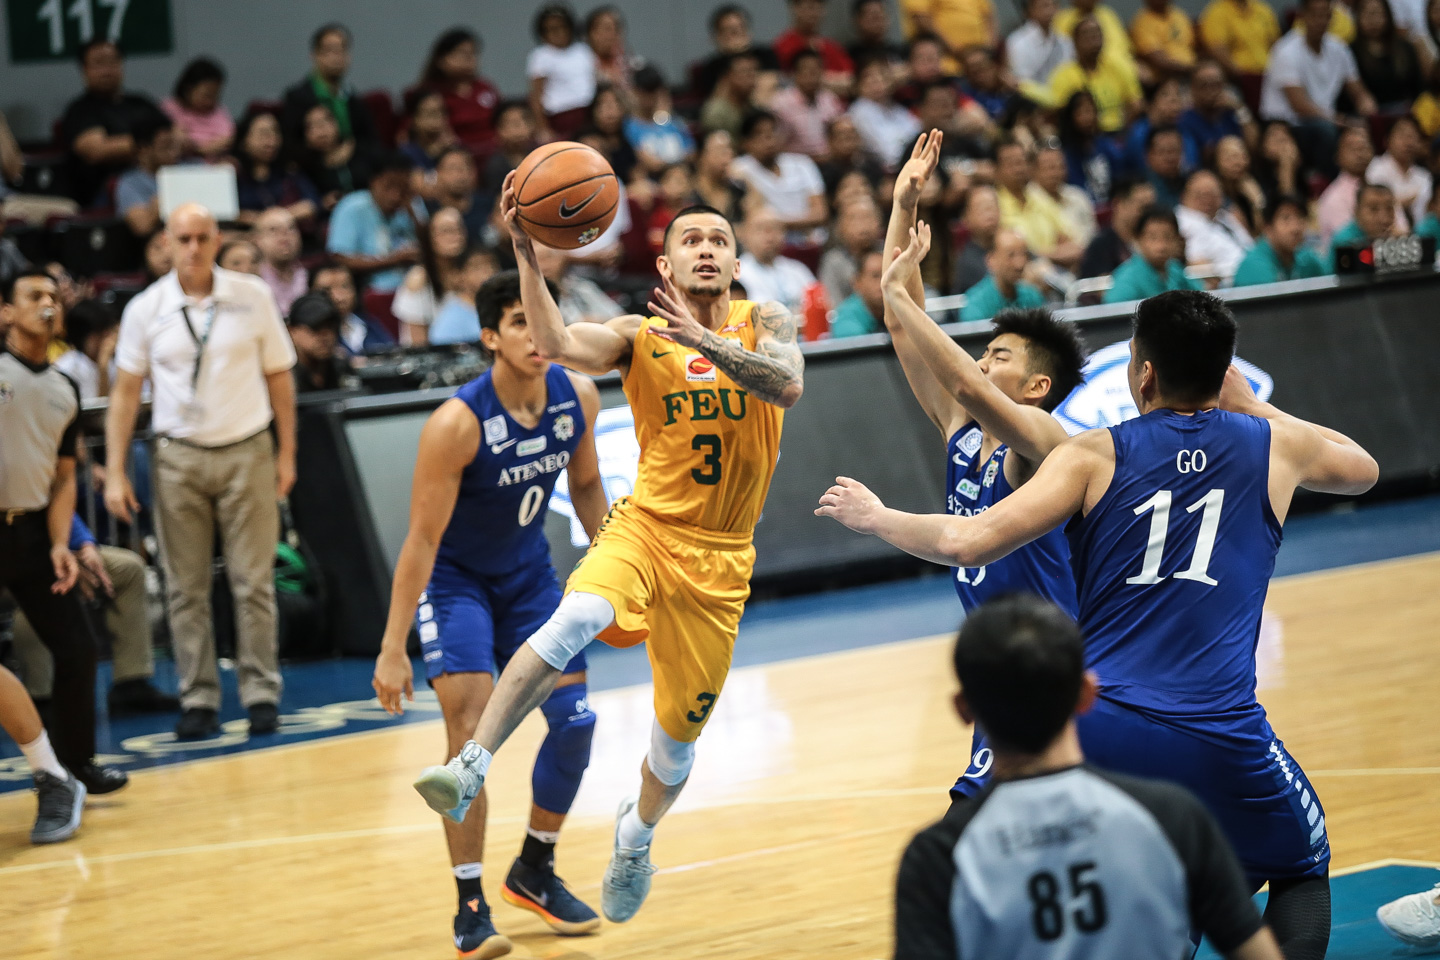 THE FUTURE. Only in his first playing year, FEU's star point guard Jasper Parker led the Tamaraws with 19 points, 4 rebounds, 2 assists and 2 steals. Photo by Josh Albelda/Rappler